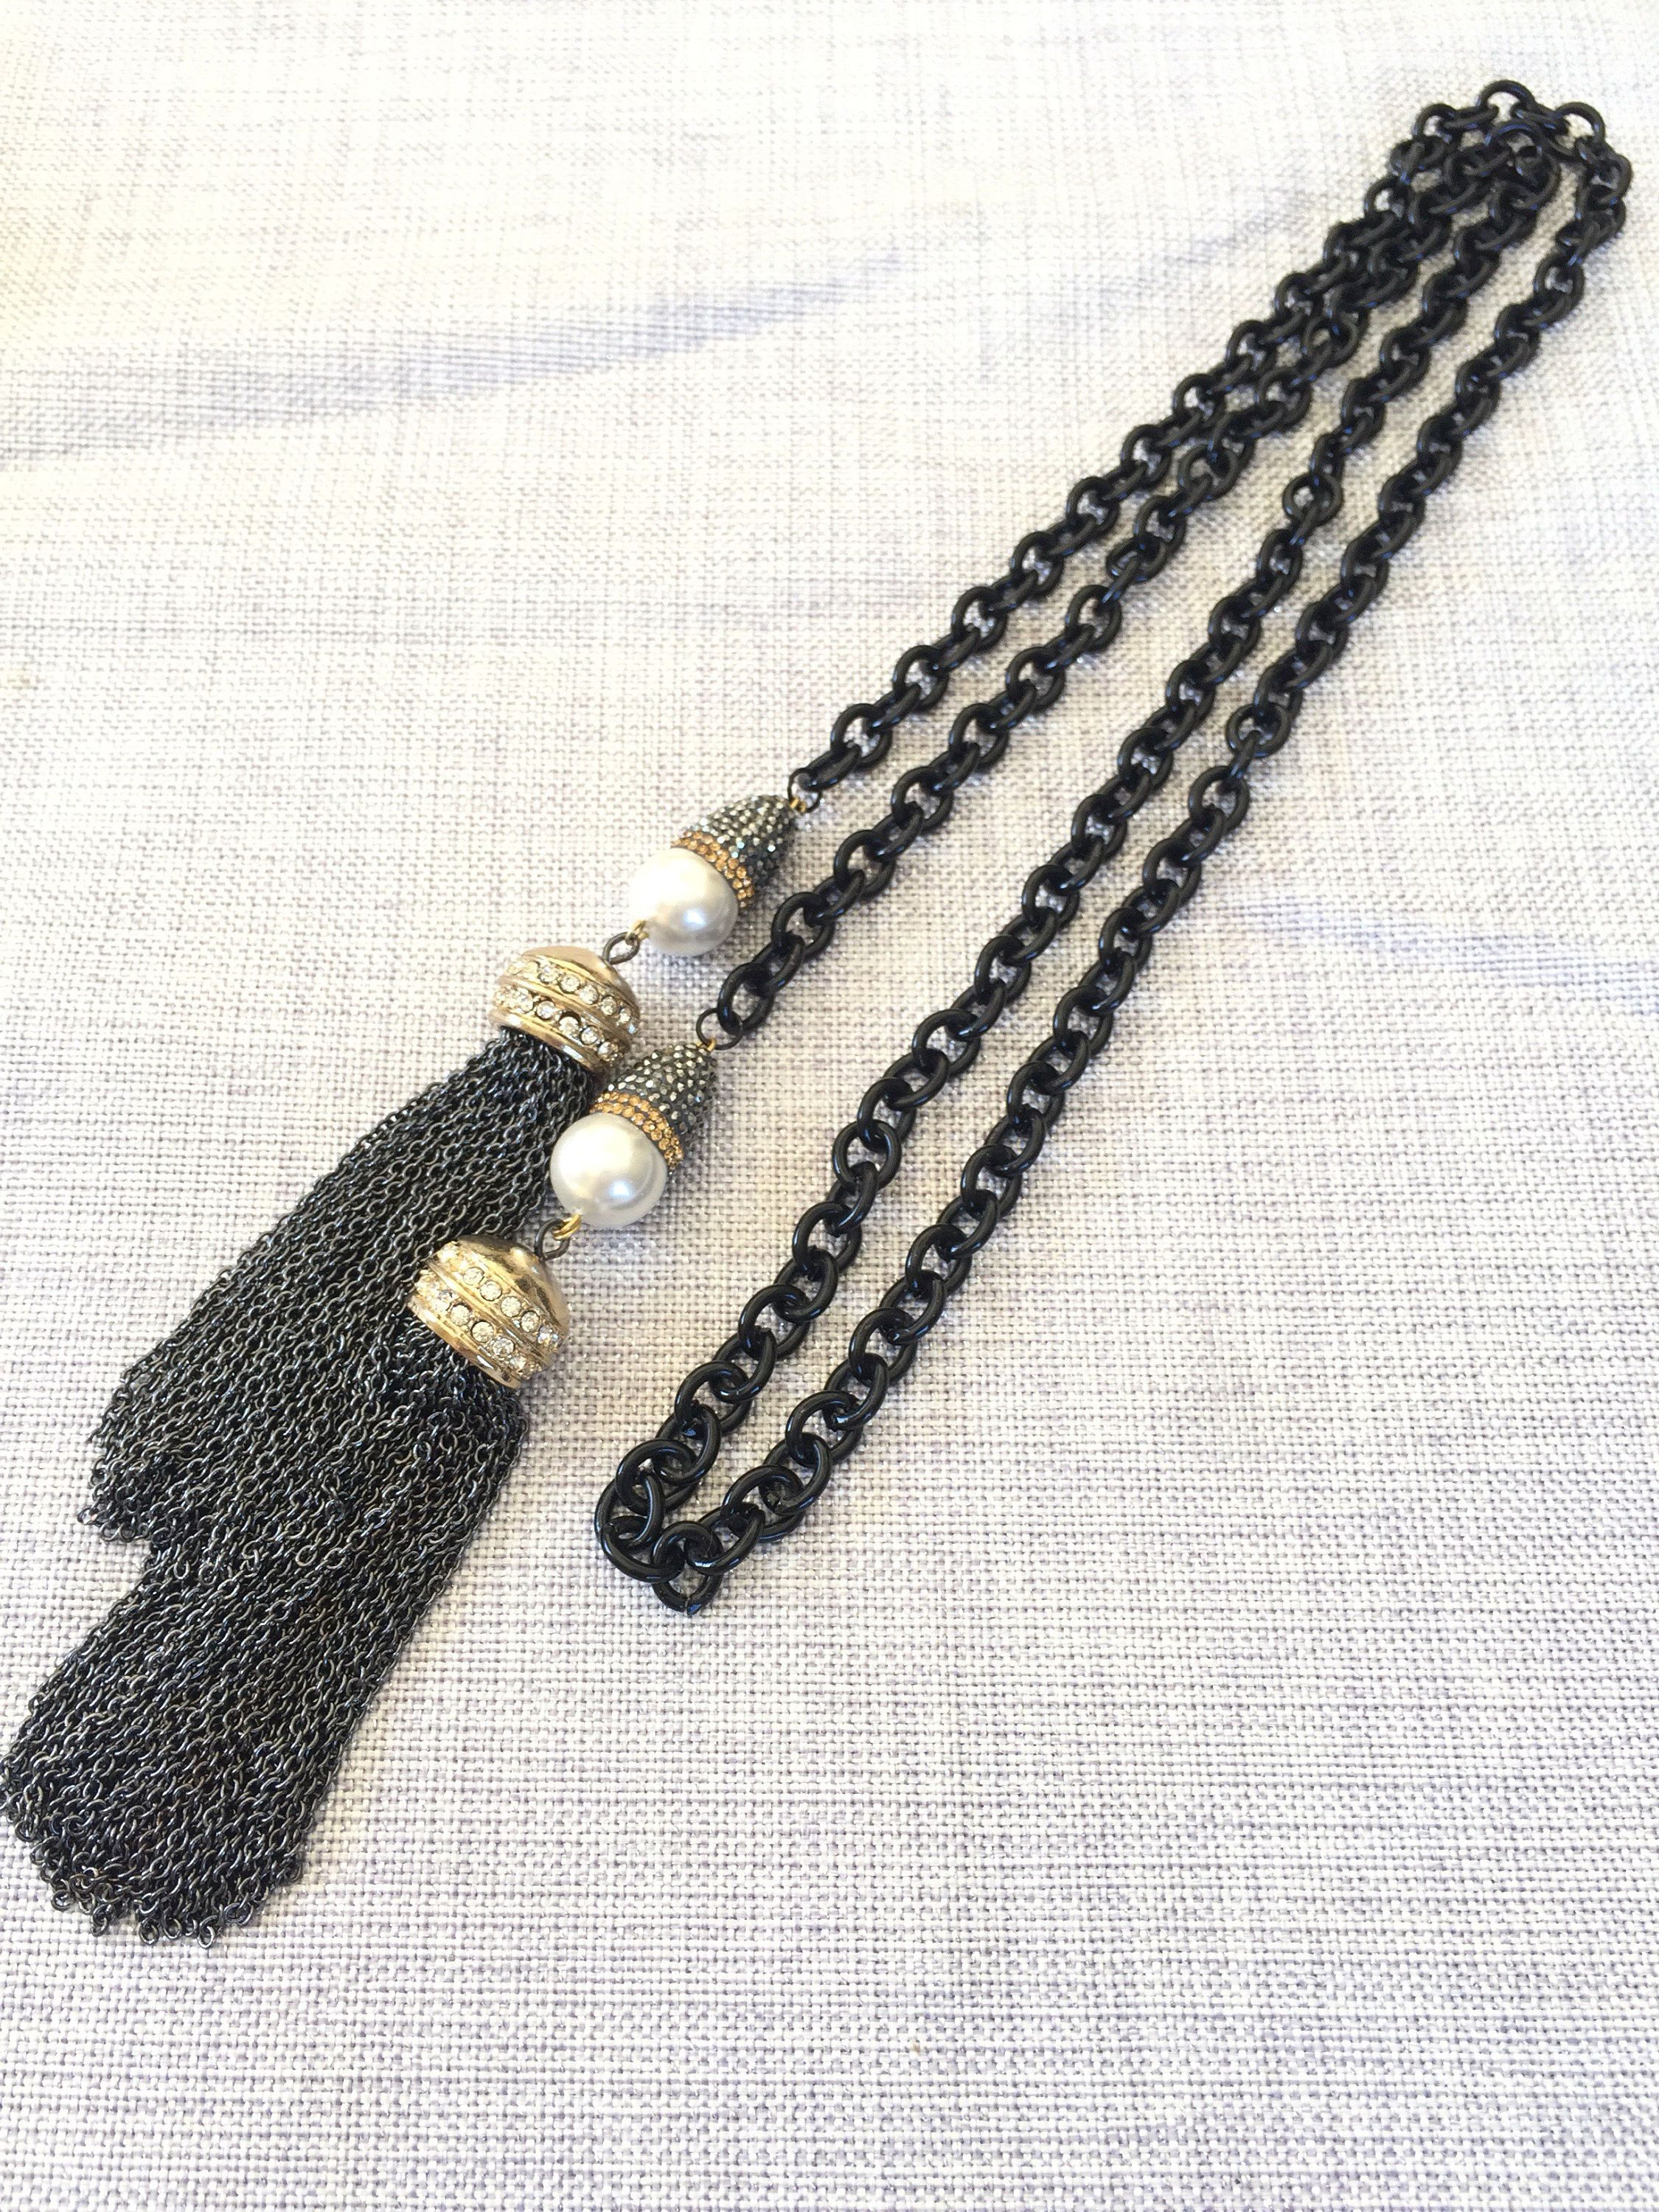 Long Chain Pearl Pave Lariat, Black Gold Tassel Chain Necklace, Mother Of Pearl Necklace, Wrap Around Jewelry, Boho Modern Fashion Gift Idea by Elegantzia on Etsy